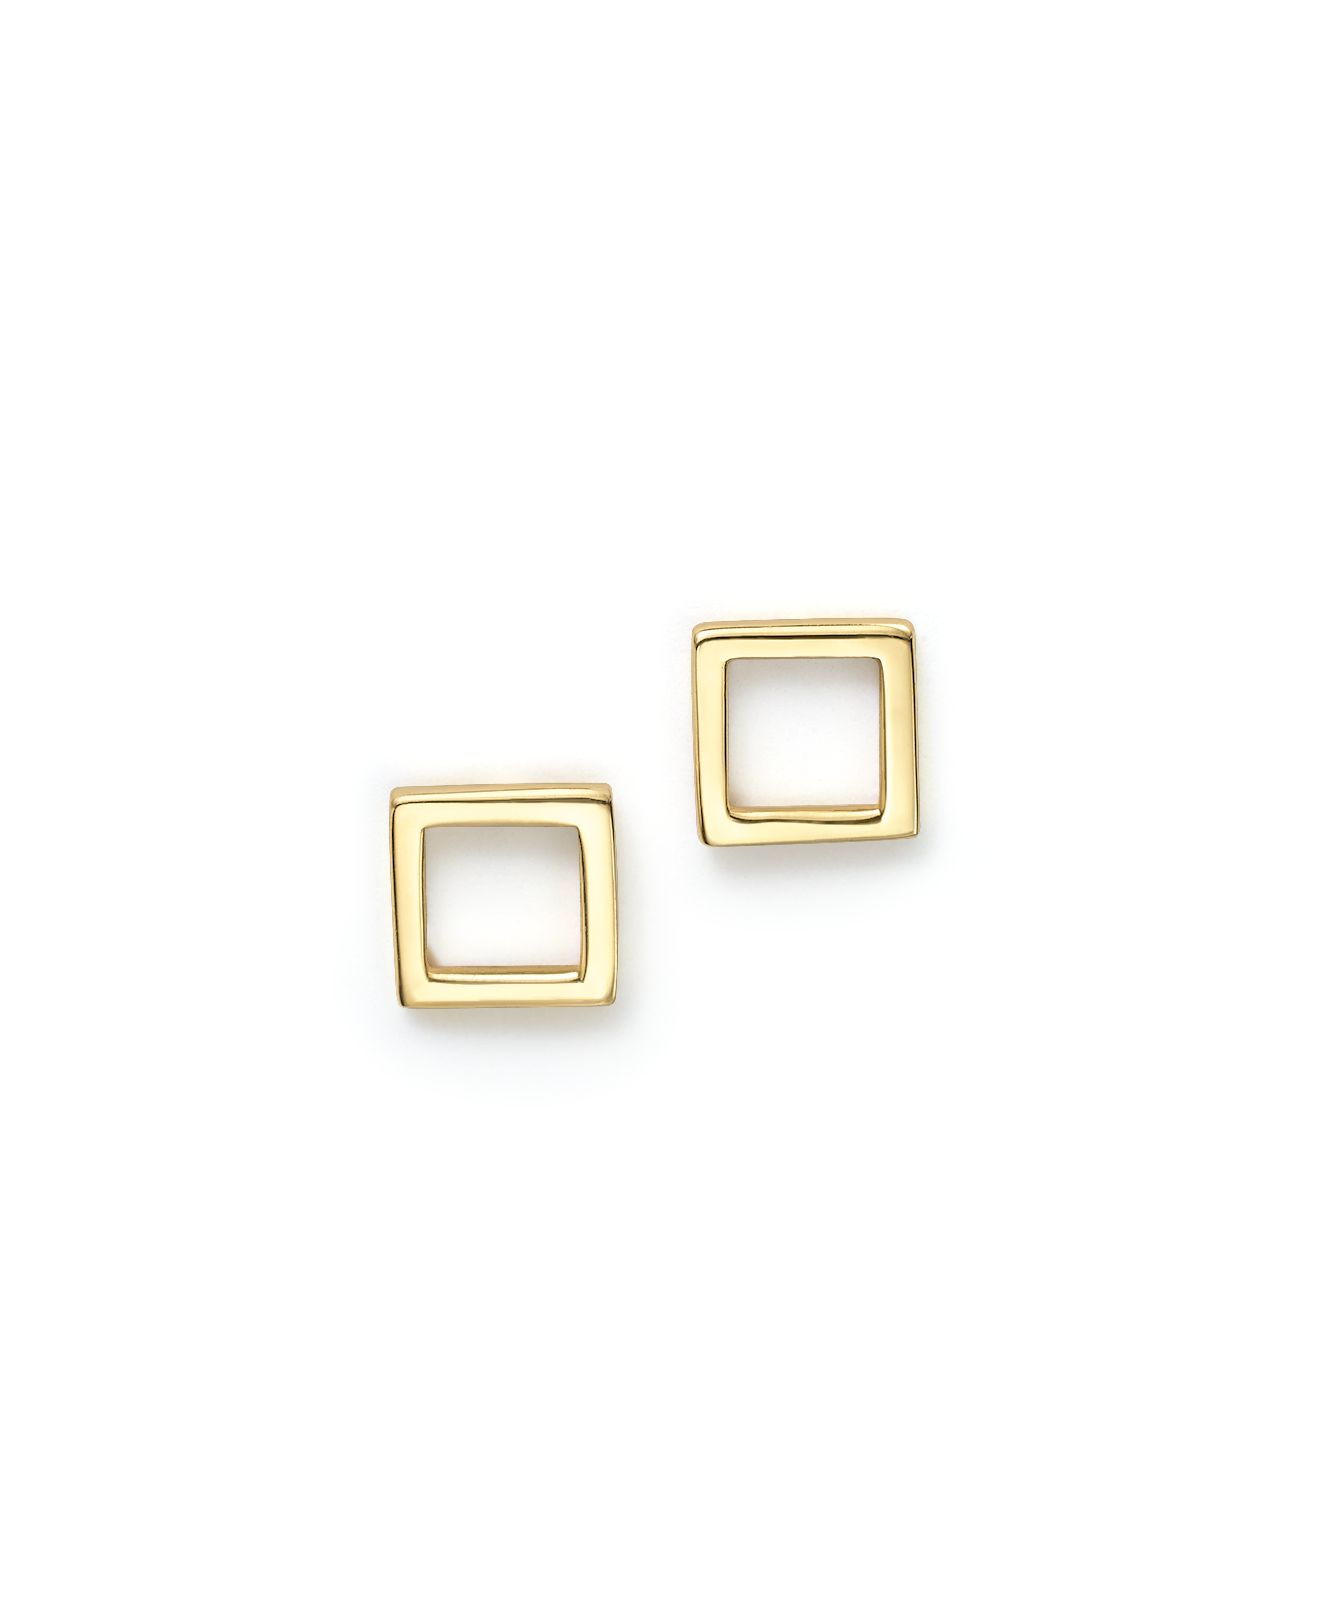 Mateo 14k Yellow Gold Square Stud Earrings in Gold